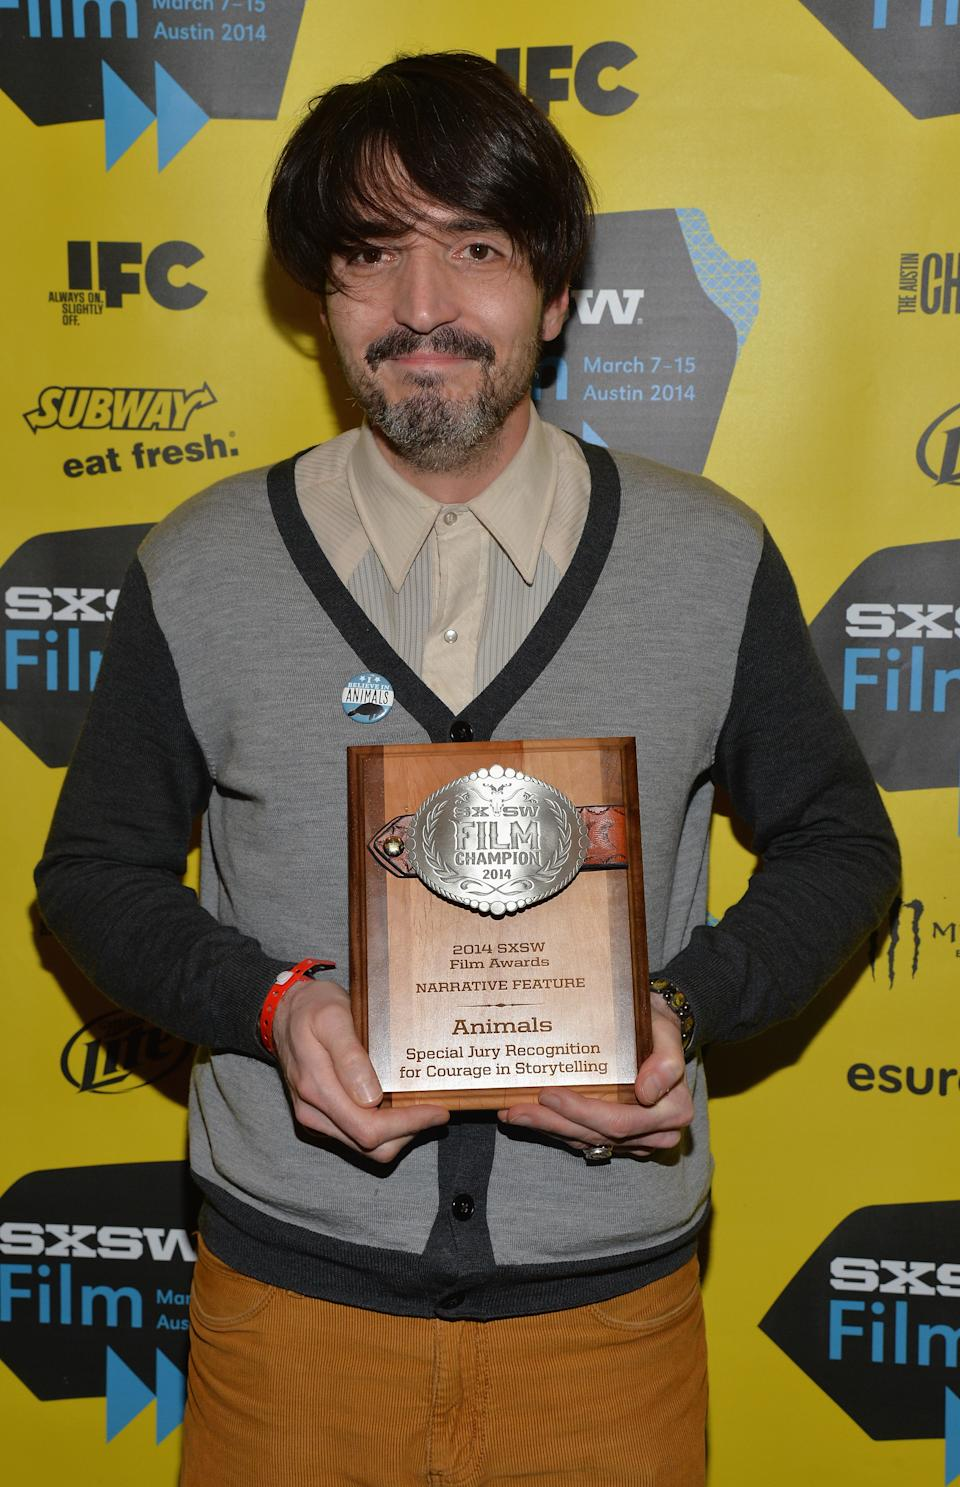 AUSTIN, TX - MARCH 11:  Filmmaker David Dastmalchian poses with the award for Special Jury Recognition for Courage in Storytelling for